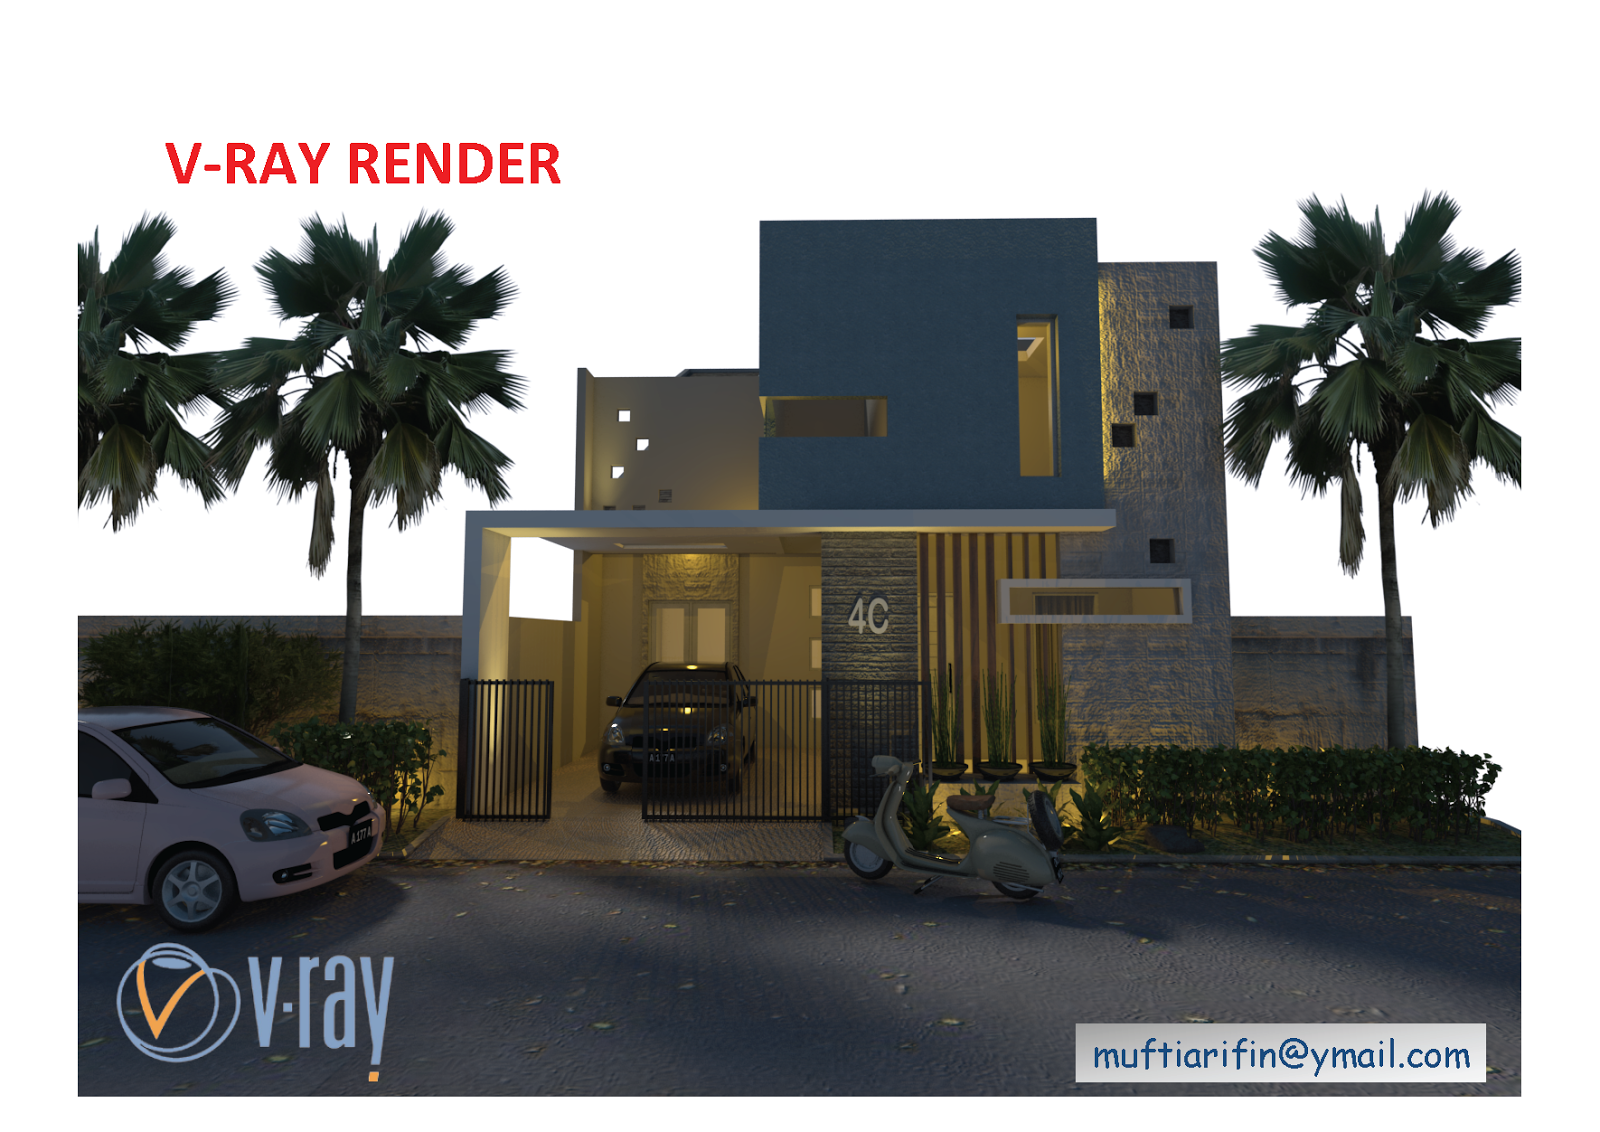 SKETCHUP TEXTURE: TUTORIAL V-RAY FOR SKETCHUP NIGHT SCENE #1